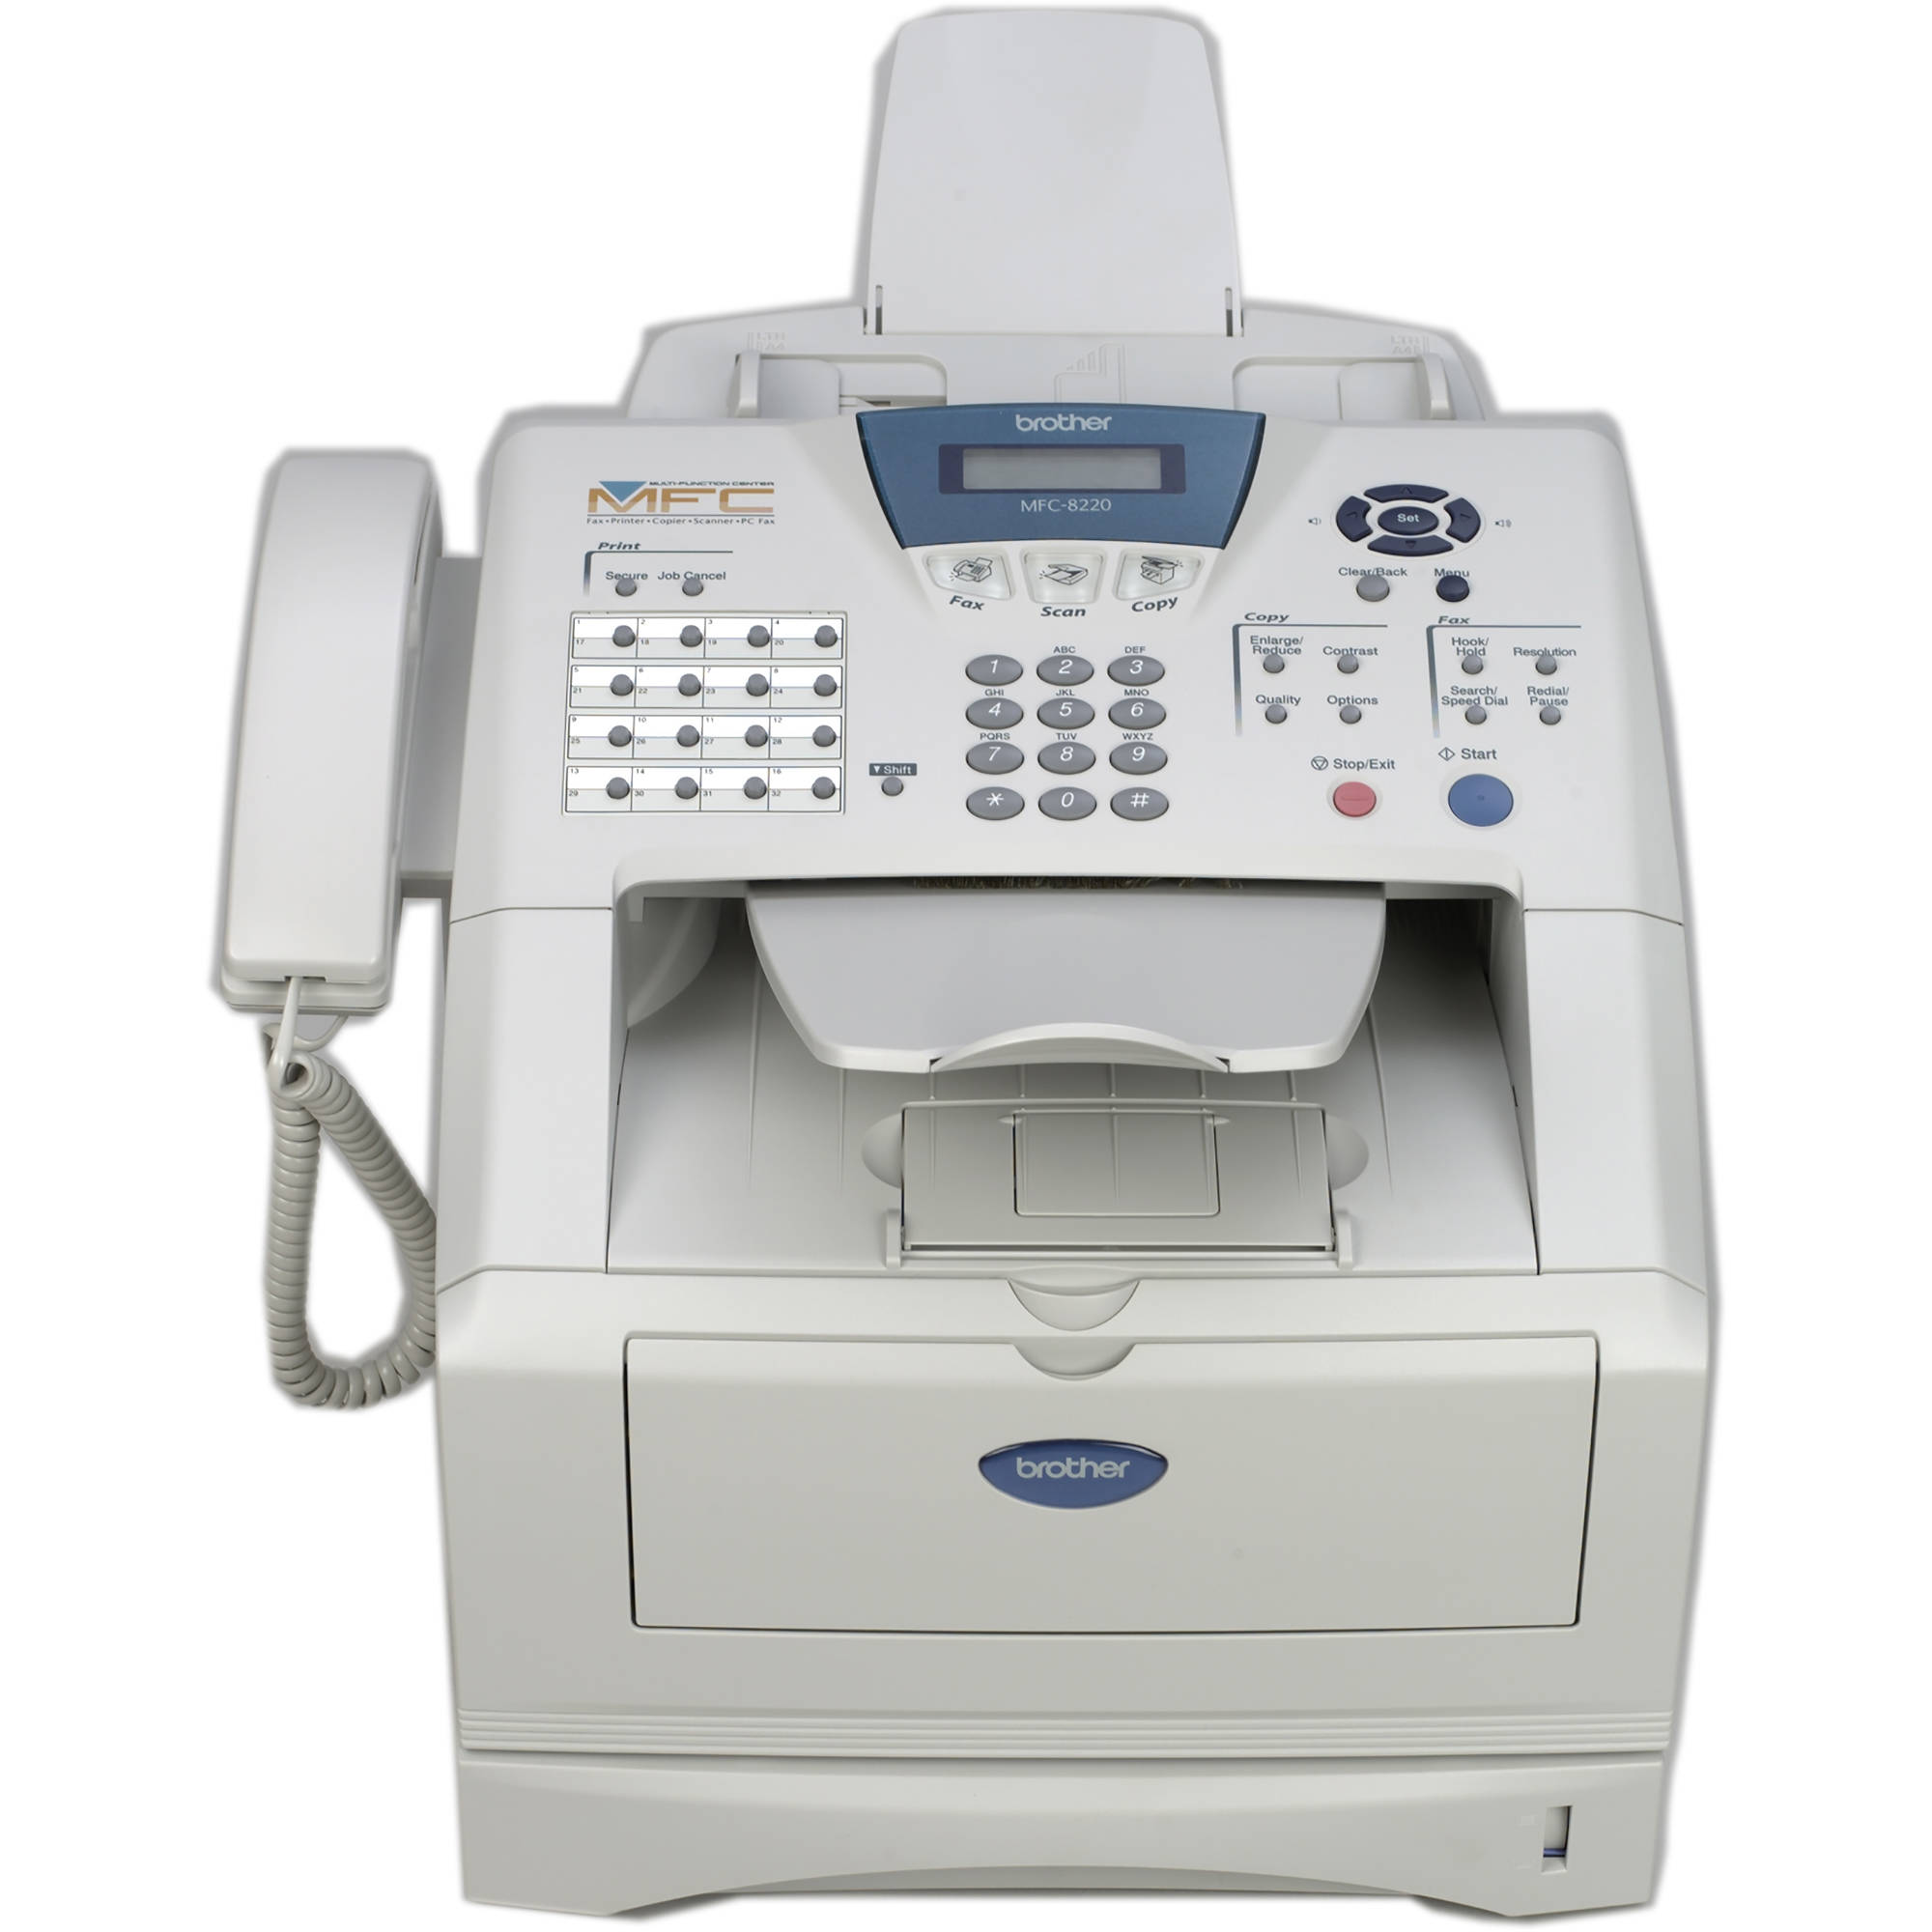 Brother MFC-8220 Printer Driver for PC